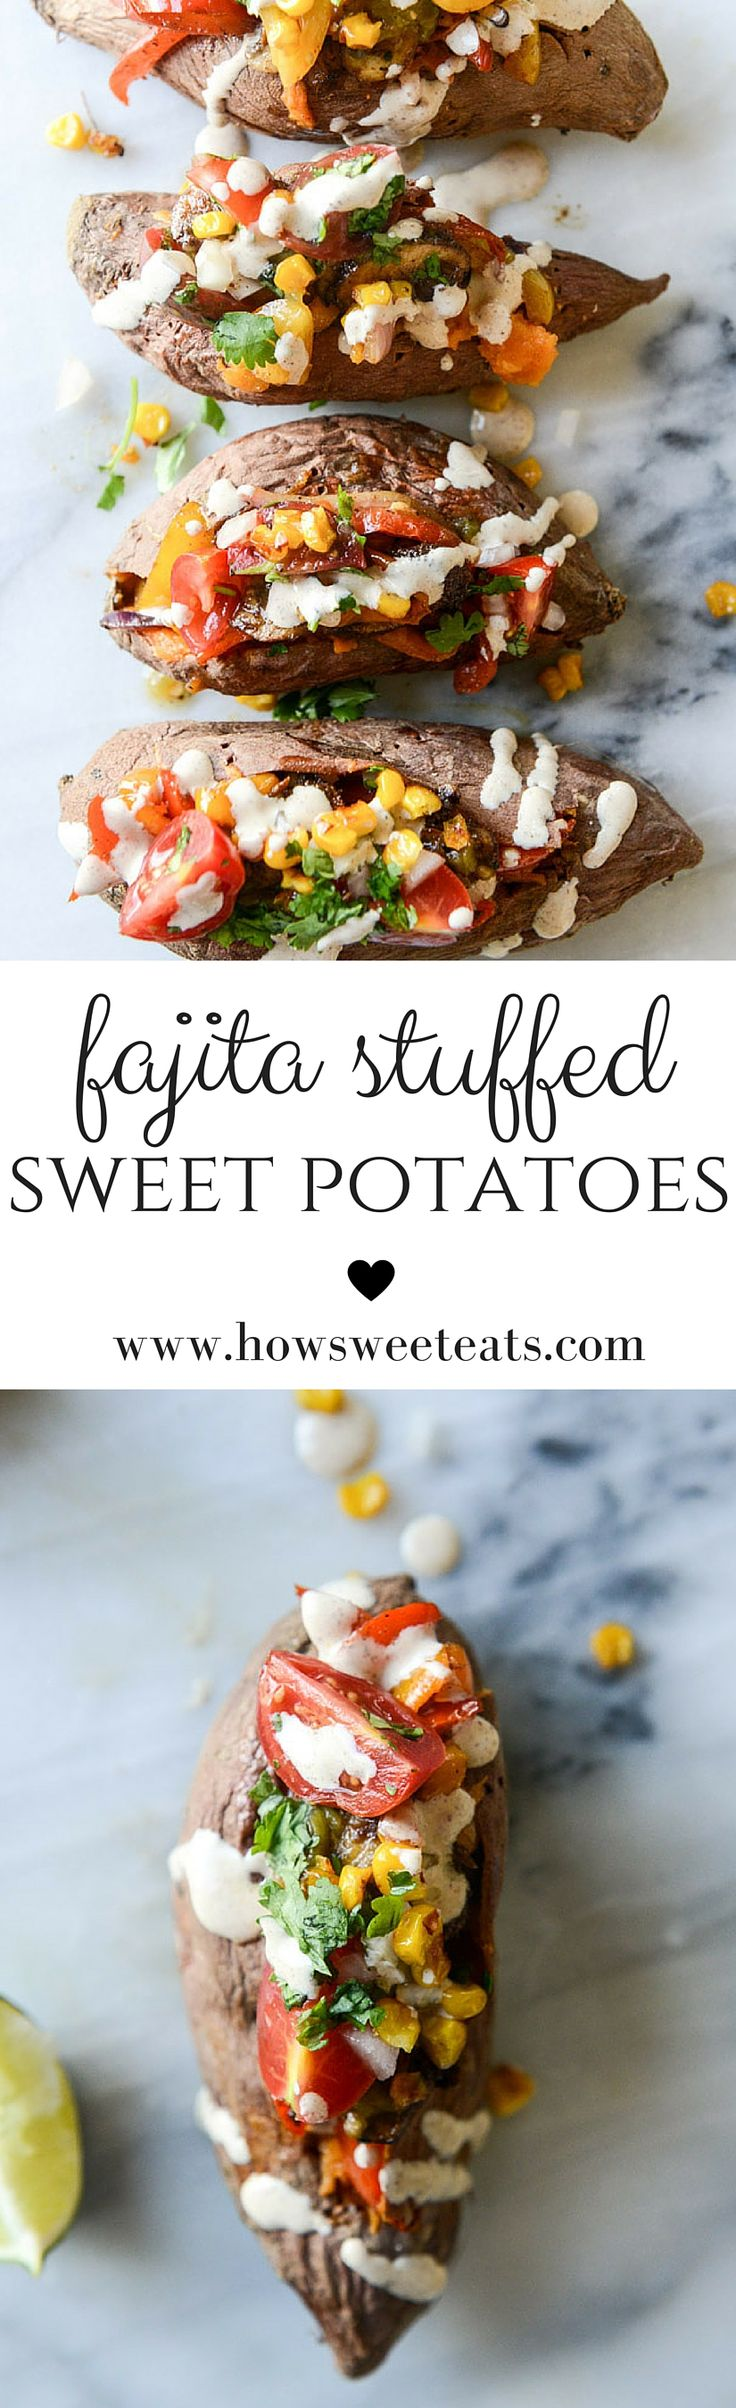 veggie fajita stuffed sweet potatoes I howsweeteats.com